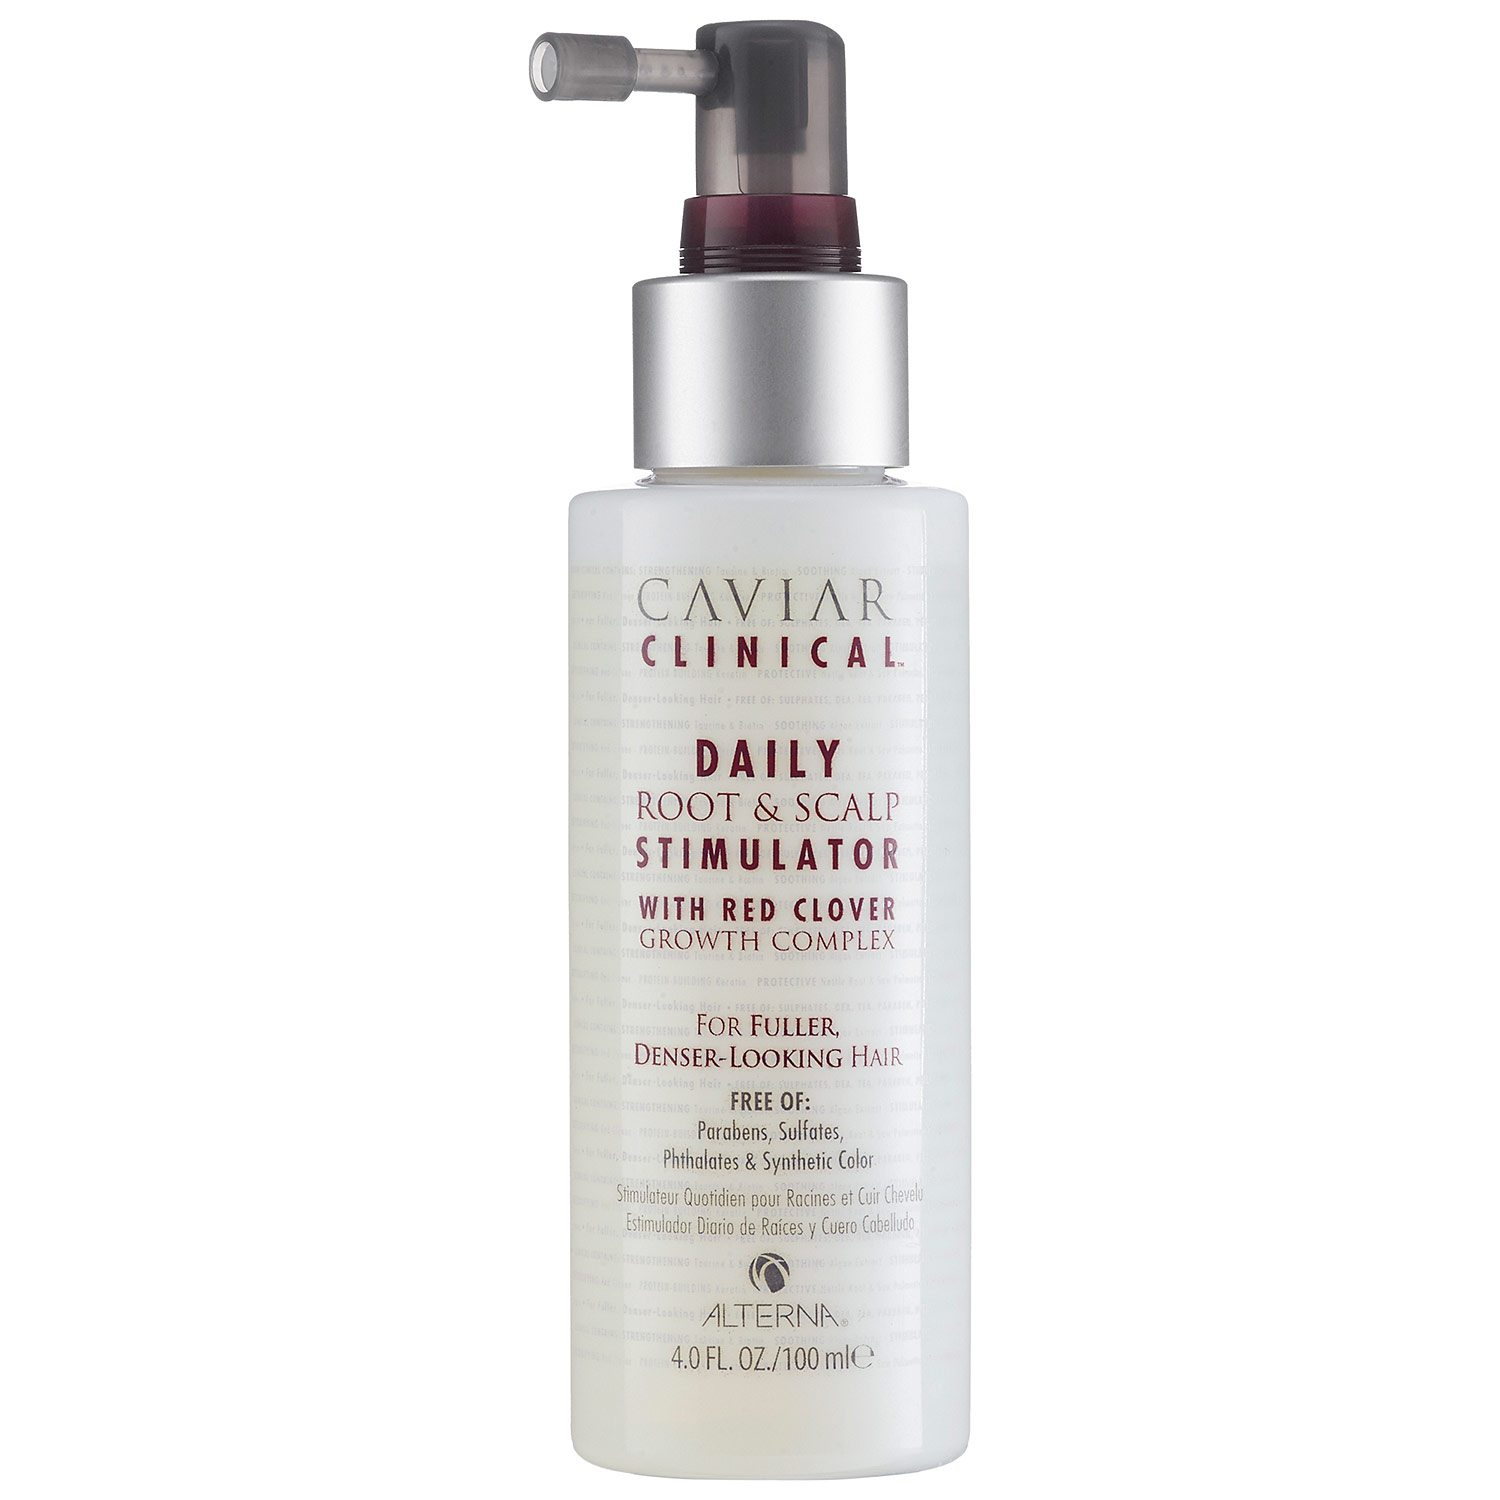 Alterna Haircare Caviar Clinical Daily Root & Scalp Stimulator